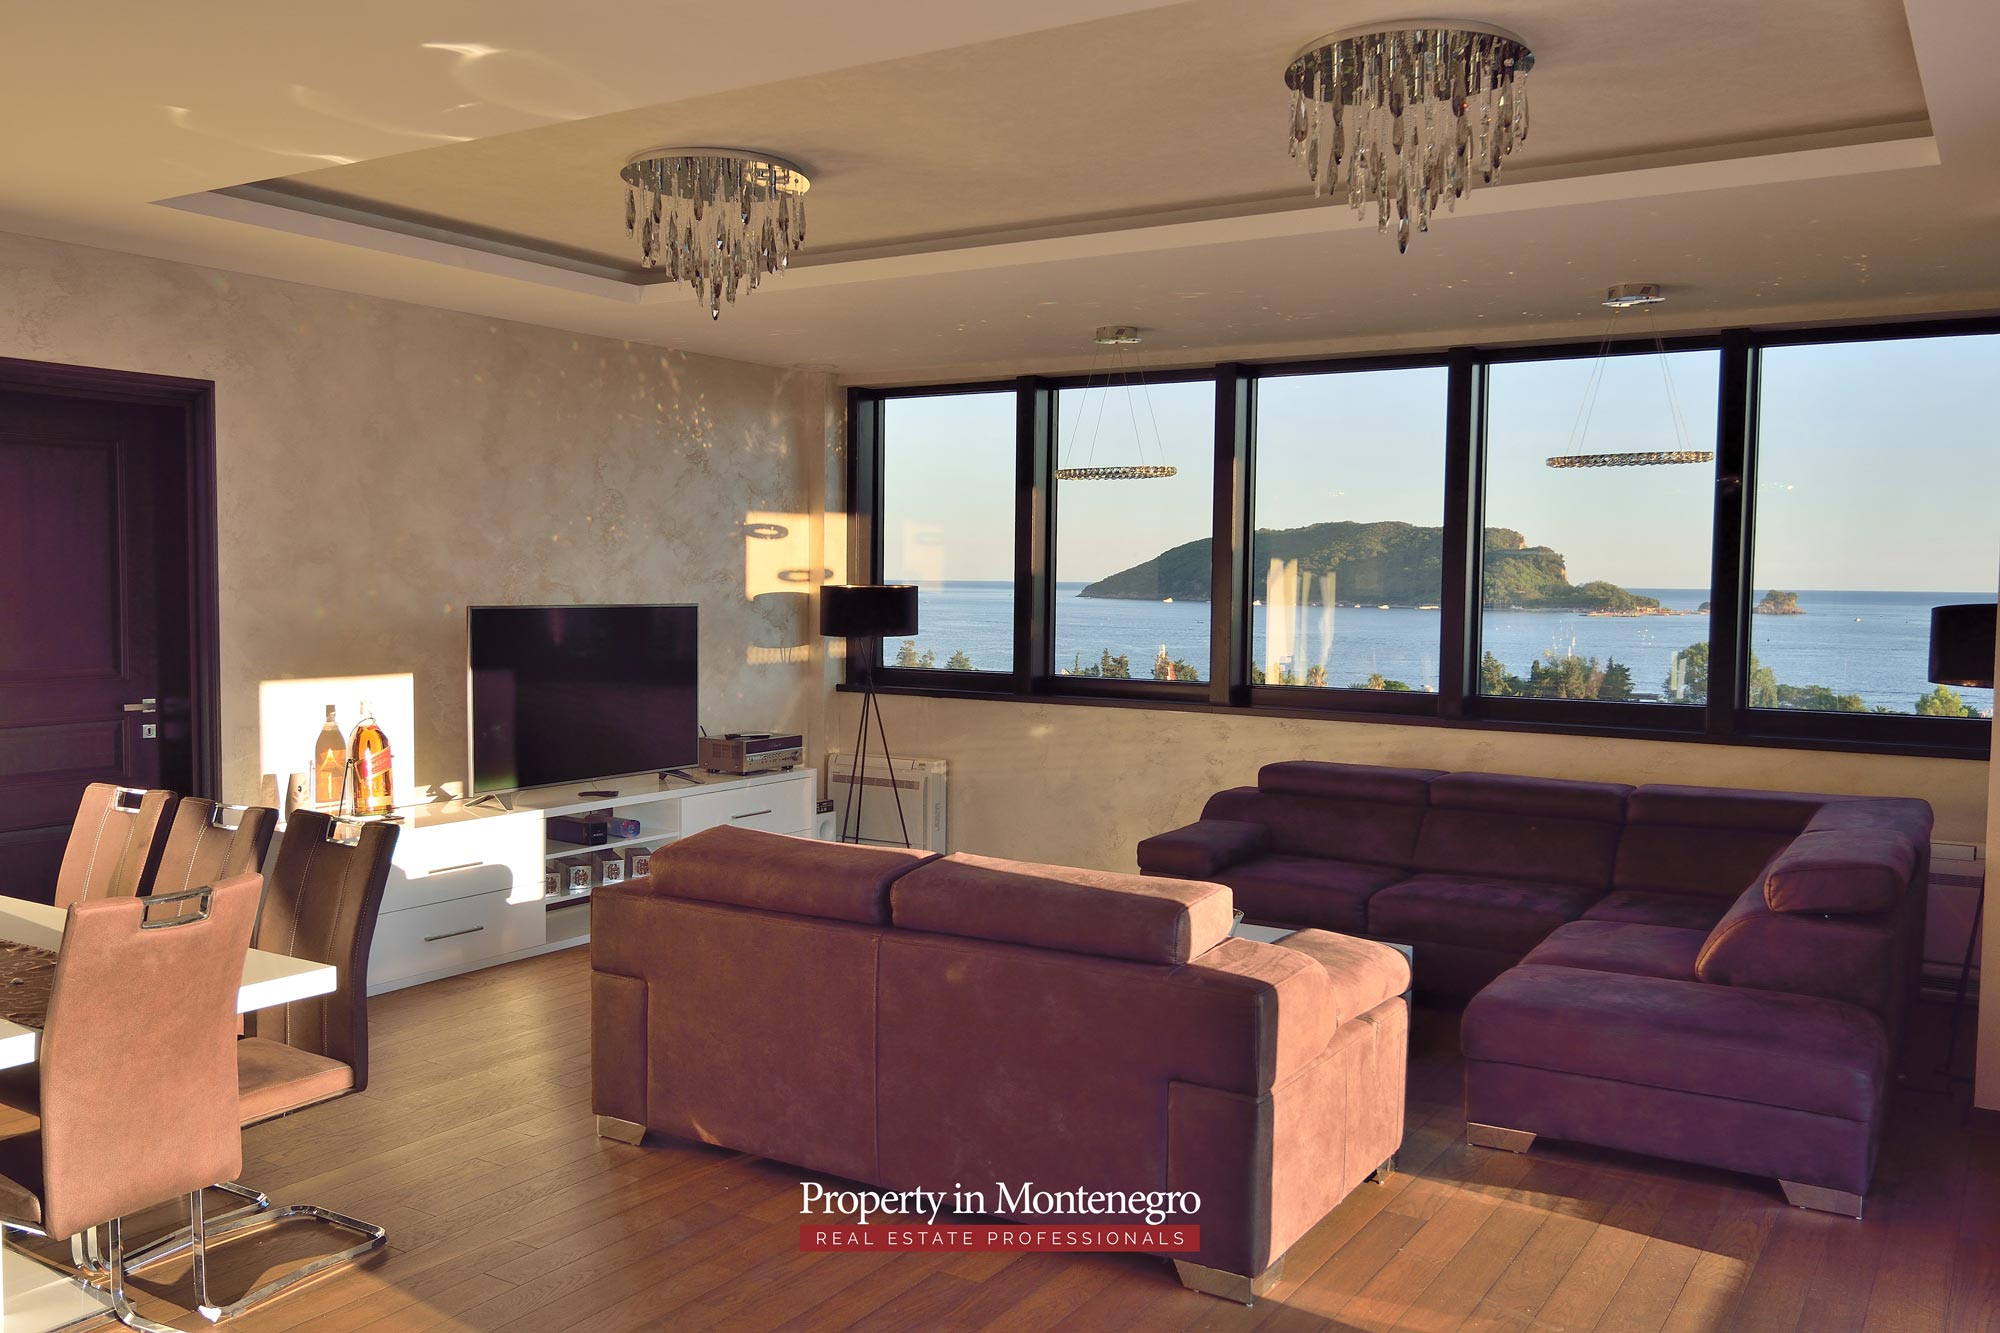 luxury-penthouse-with-panoramic-view-and-swimming-pool-for-sale-in-Budva-Montenegro (48).jpg